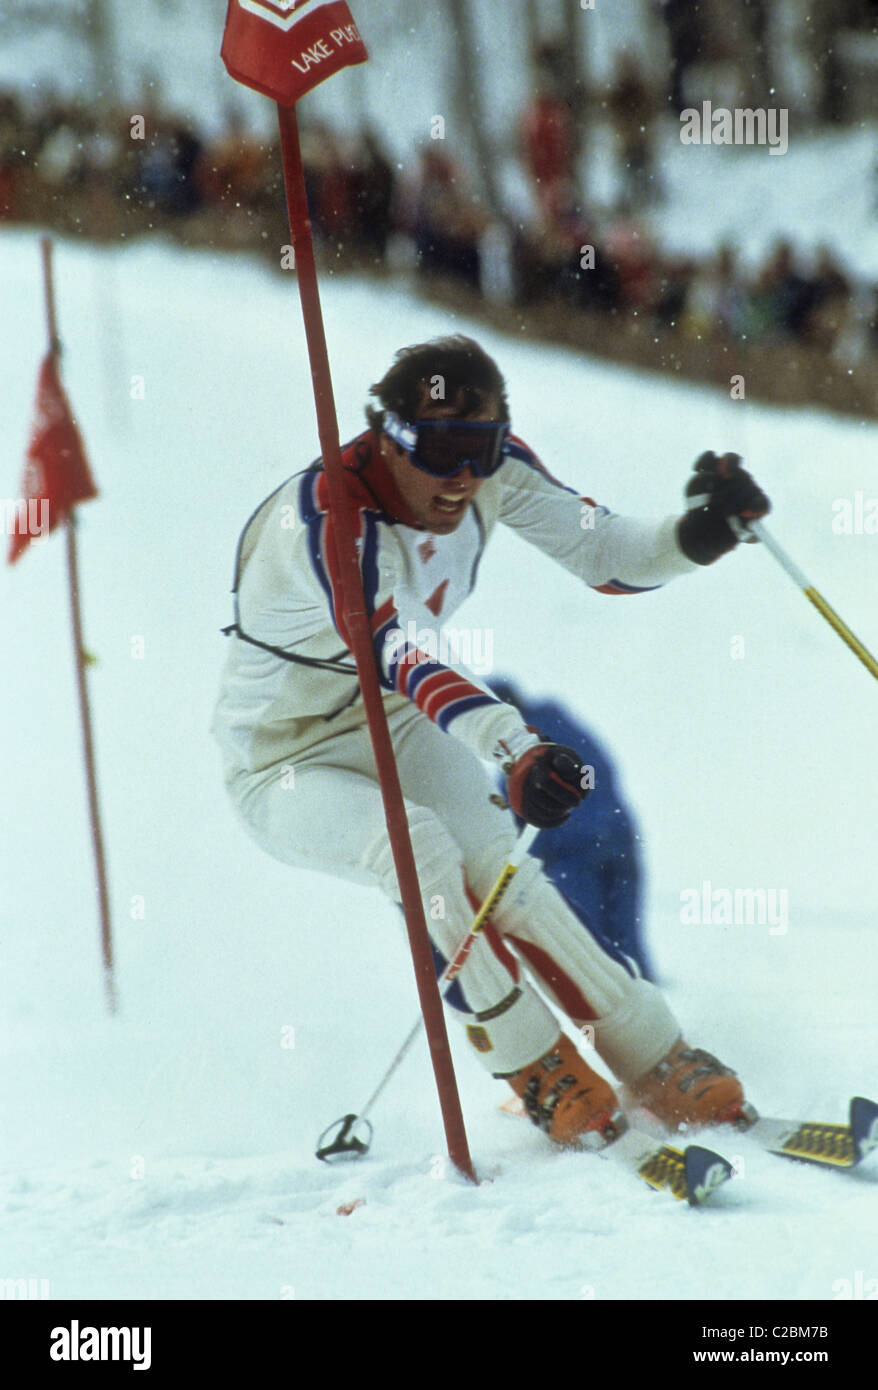 Phil Mahre (USA) silver medalist competing in the Slalom at the 1980 Olympic Winter Games, Lake Placid, New York - Stock Image